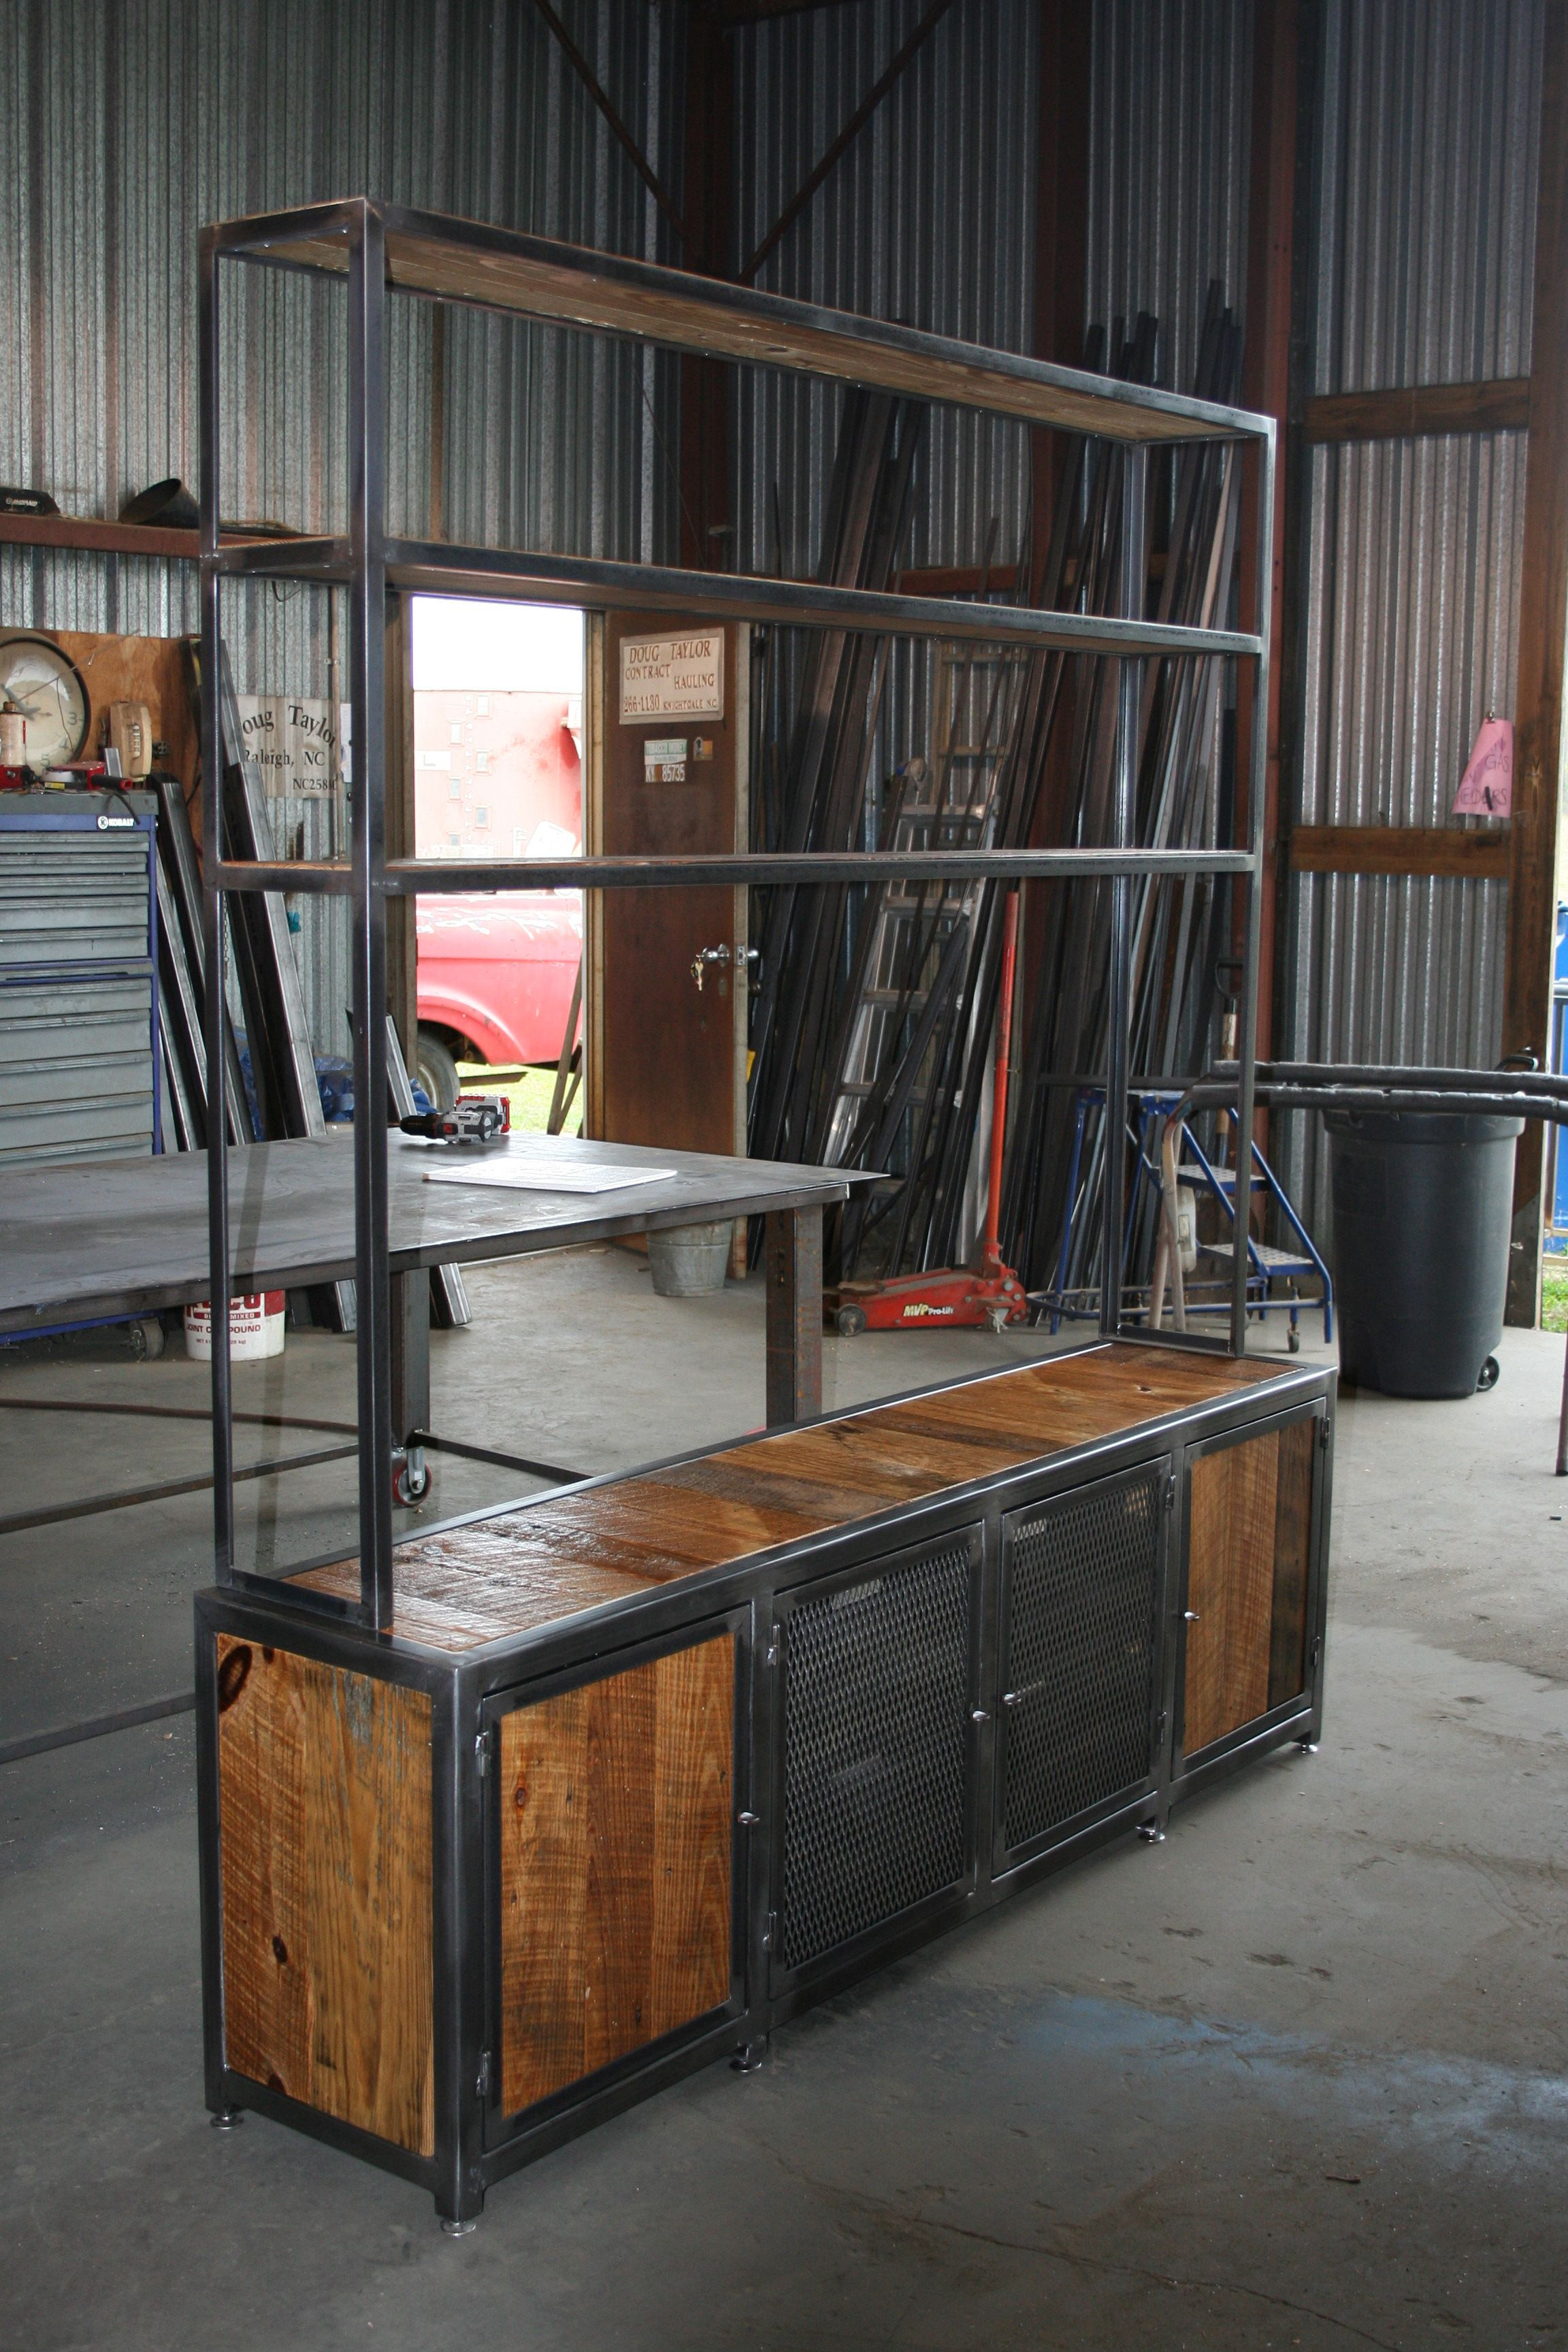 The Berendcustom Ordered Console And Shelving Unit. Steel Frame with regard to Mix Patina Metal Frame Console Tables (Image 27 of 30)